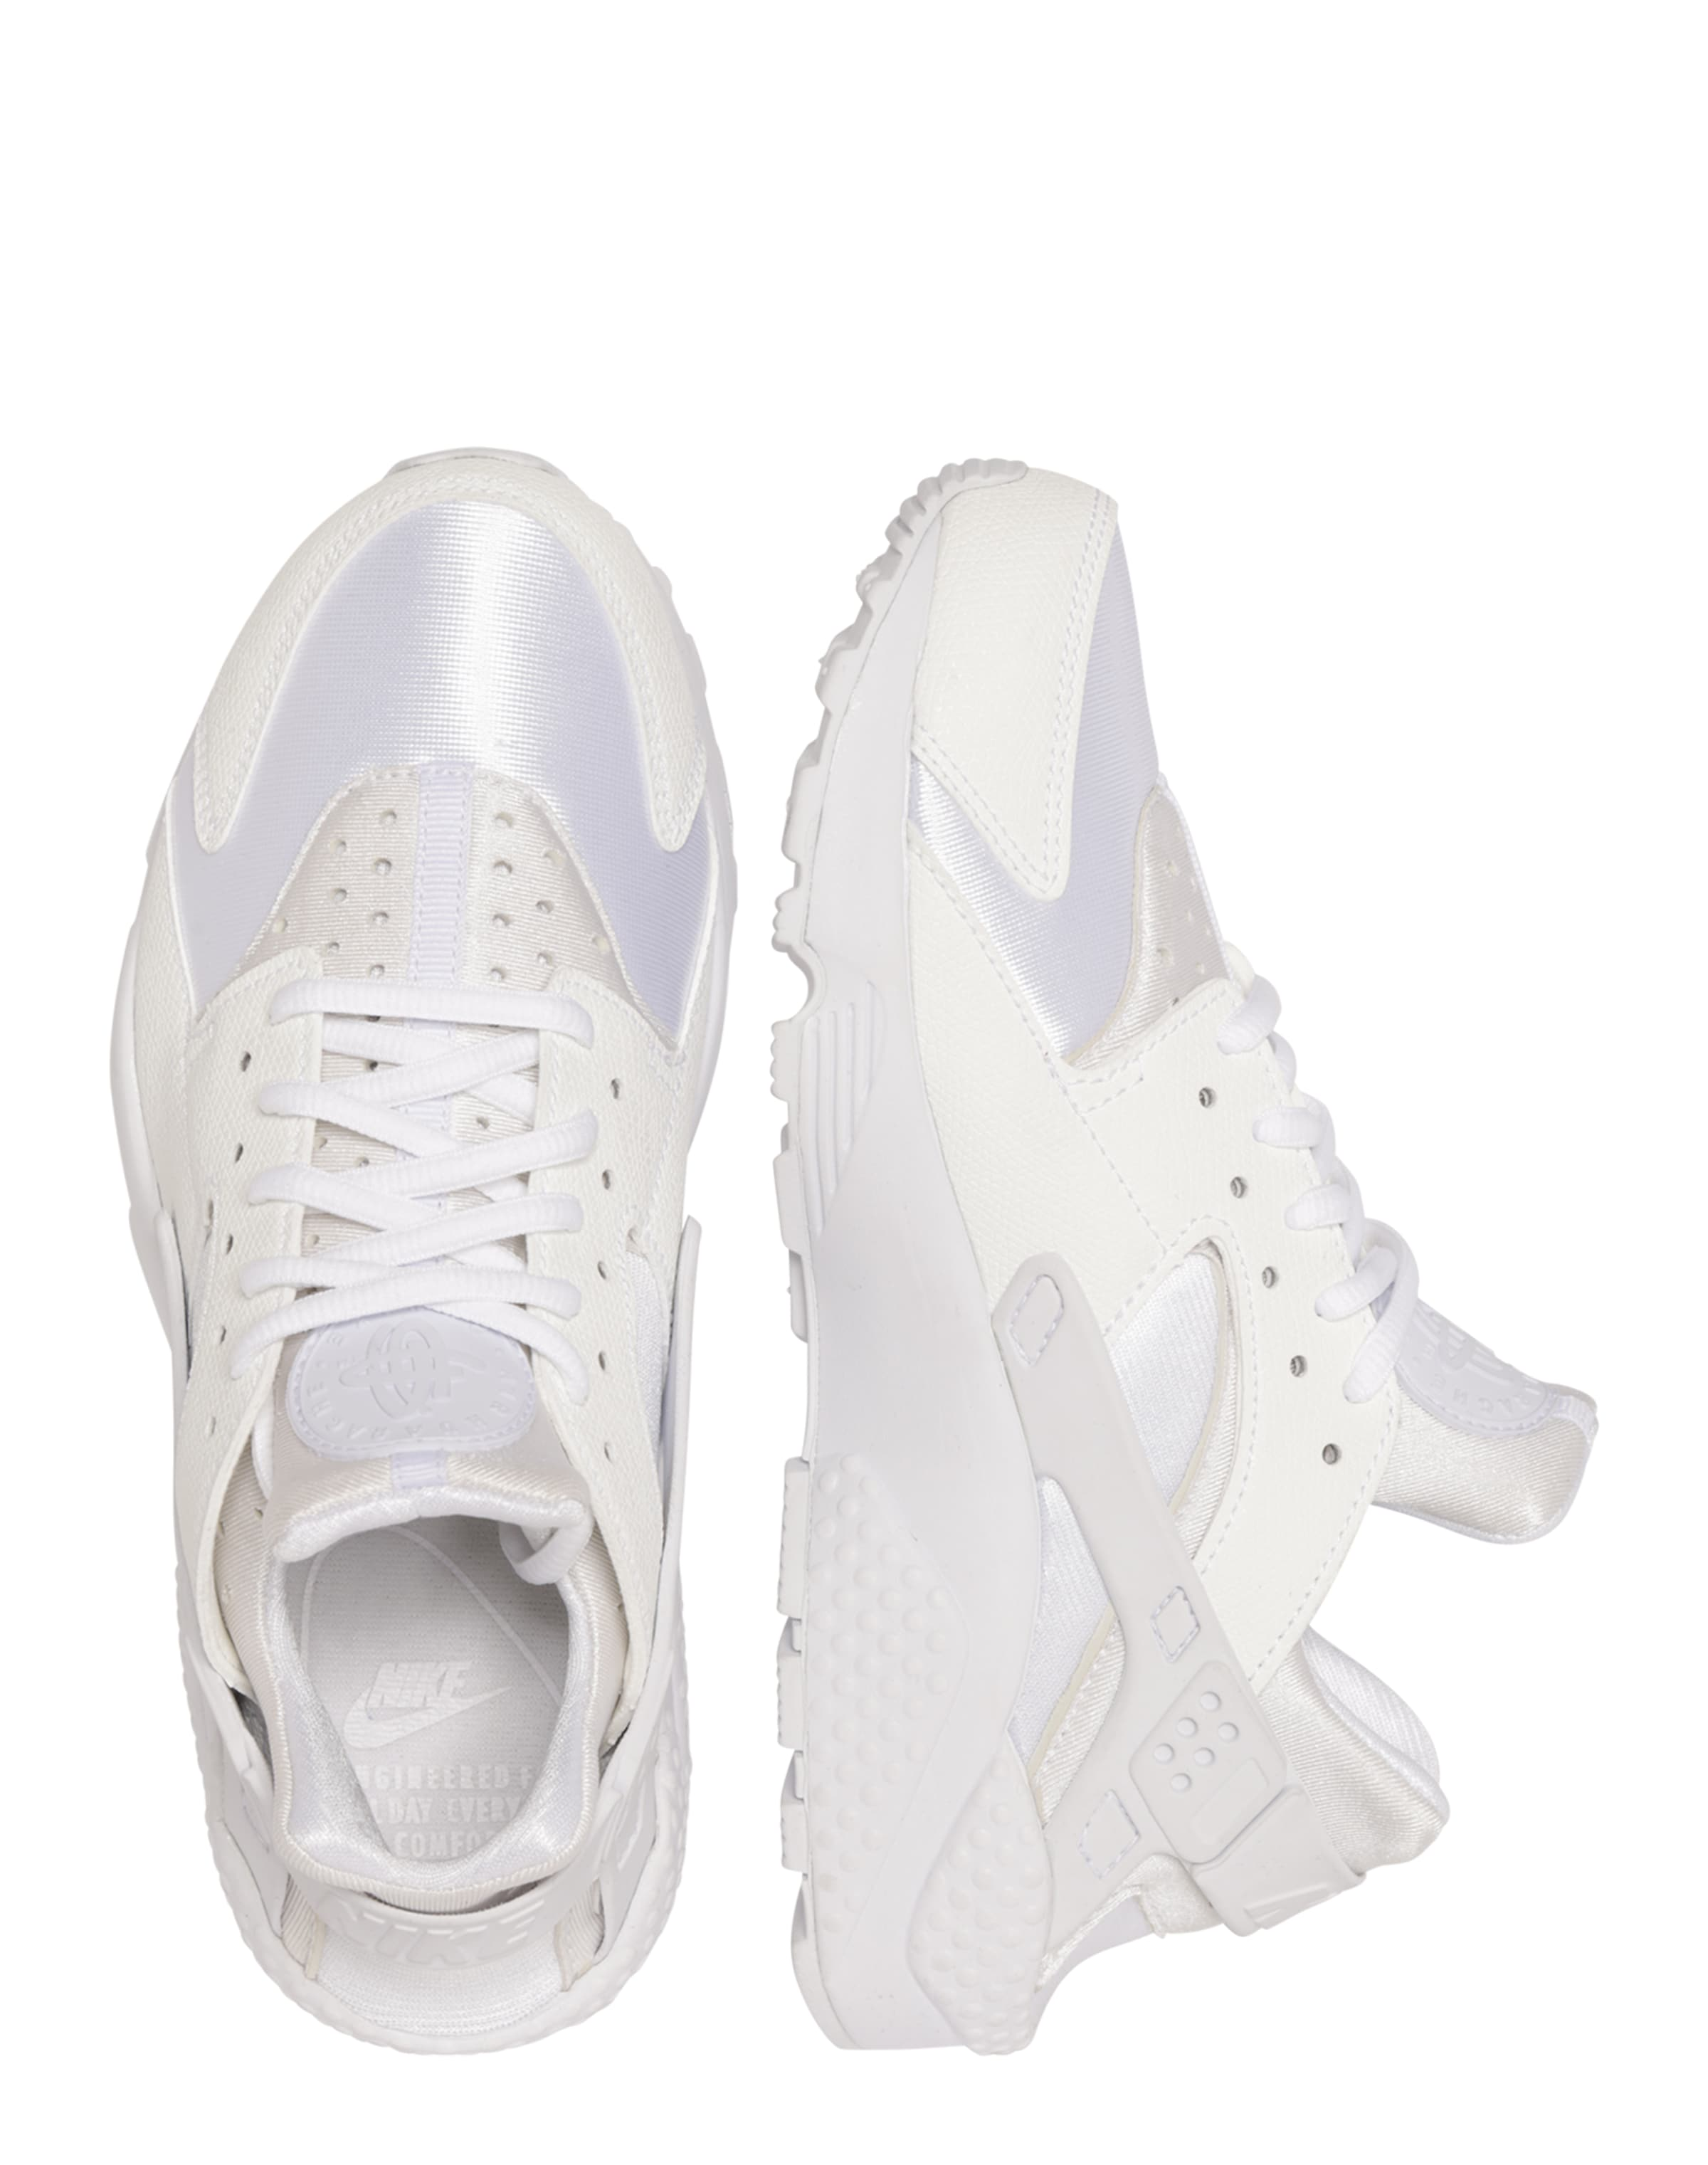 Basses Blanc Baskets Run' 'air En Nike Huarache Sportswear DH9WbeE2IY